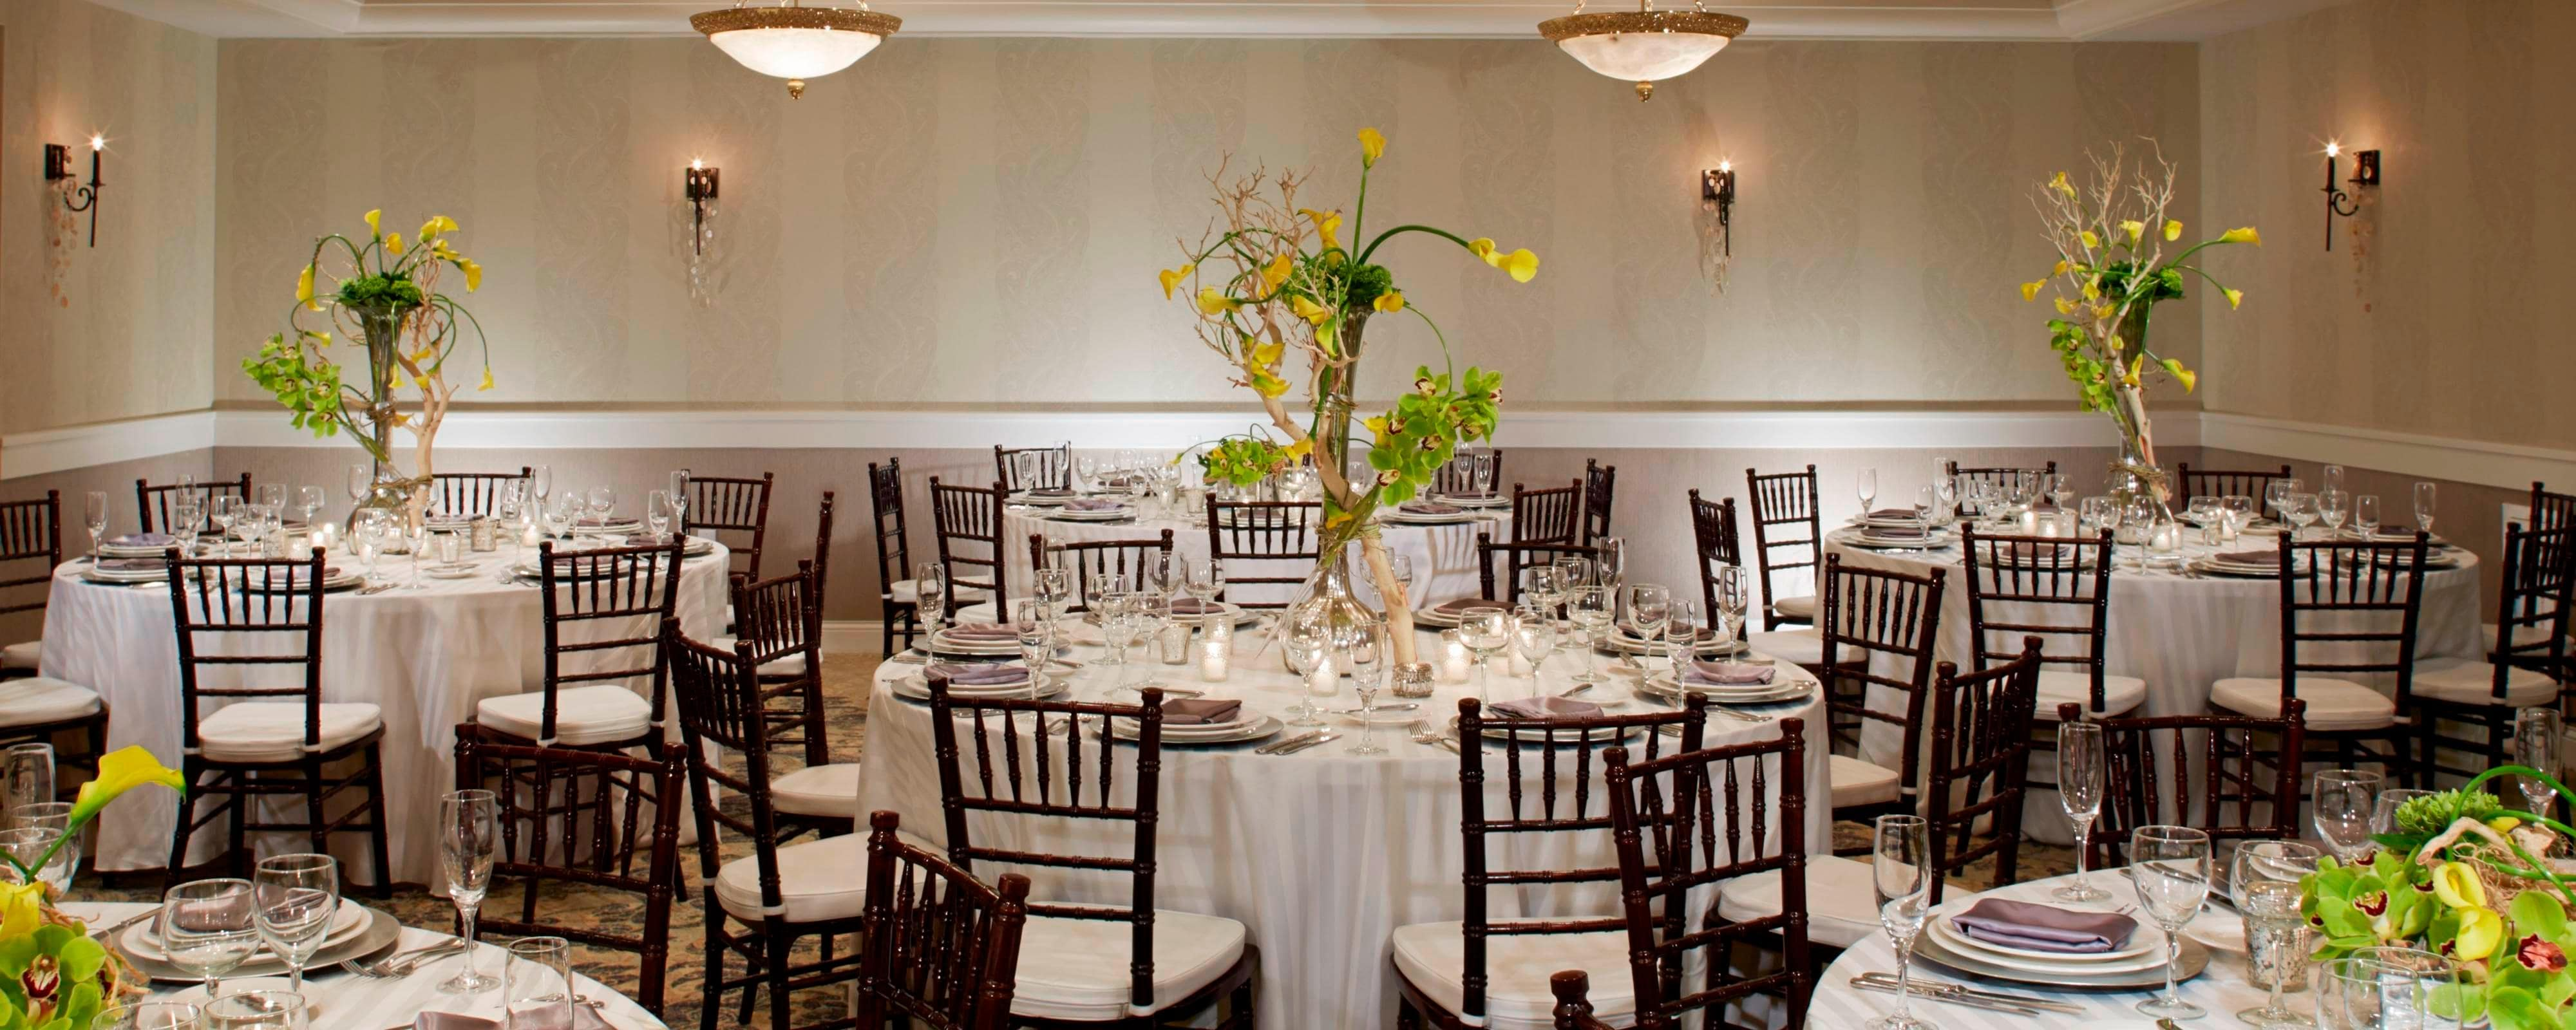 Bridal Shower Venues Rochester, NY | The Del Monte Lodge